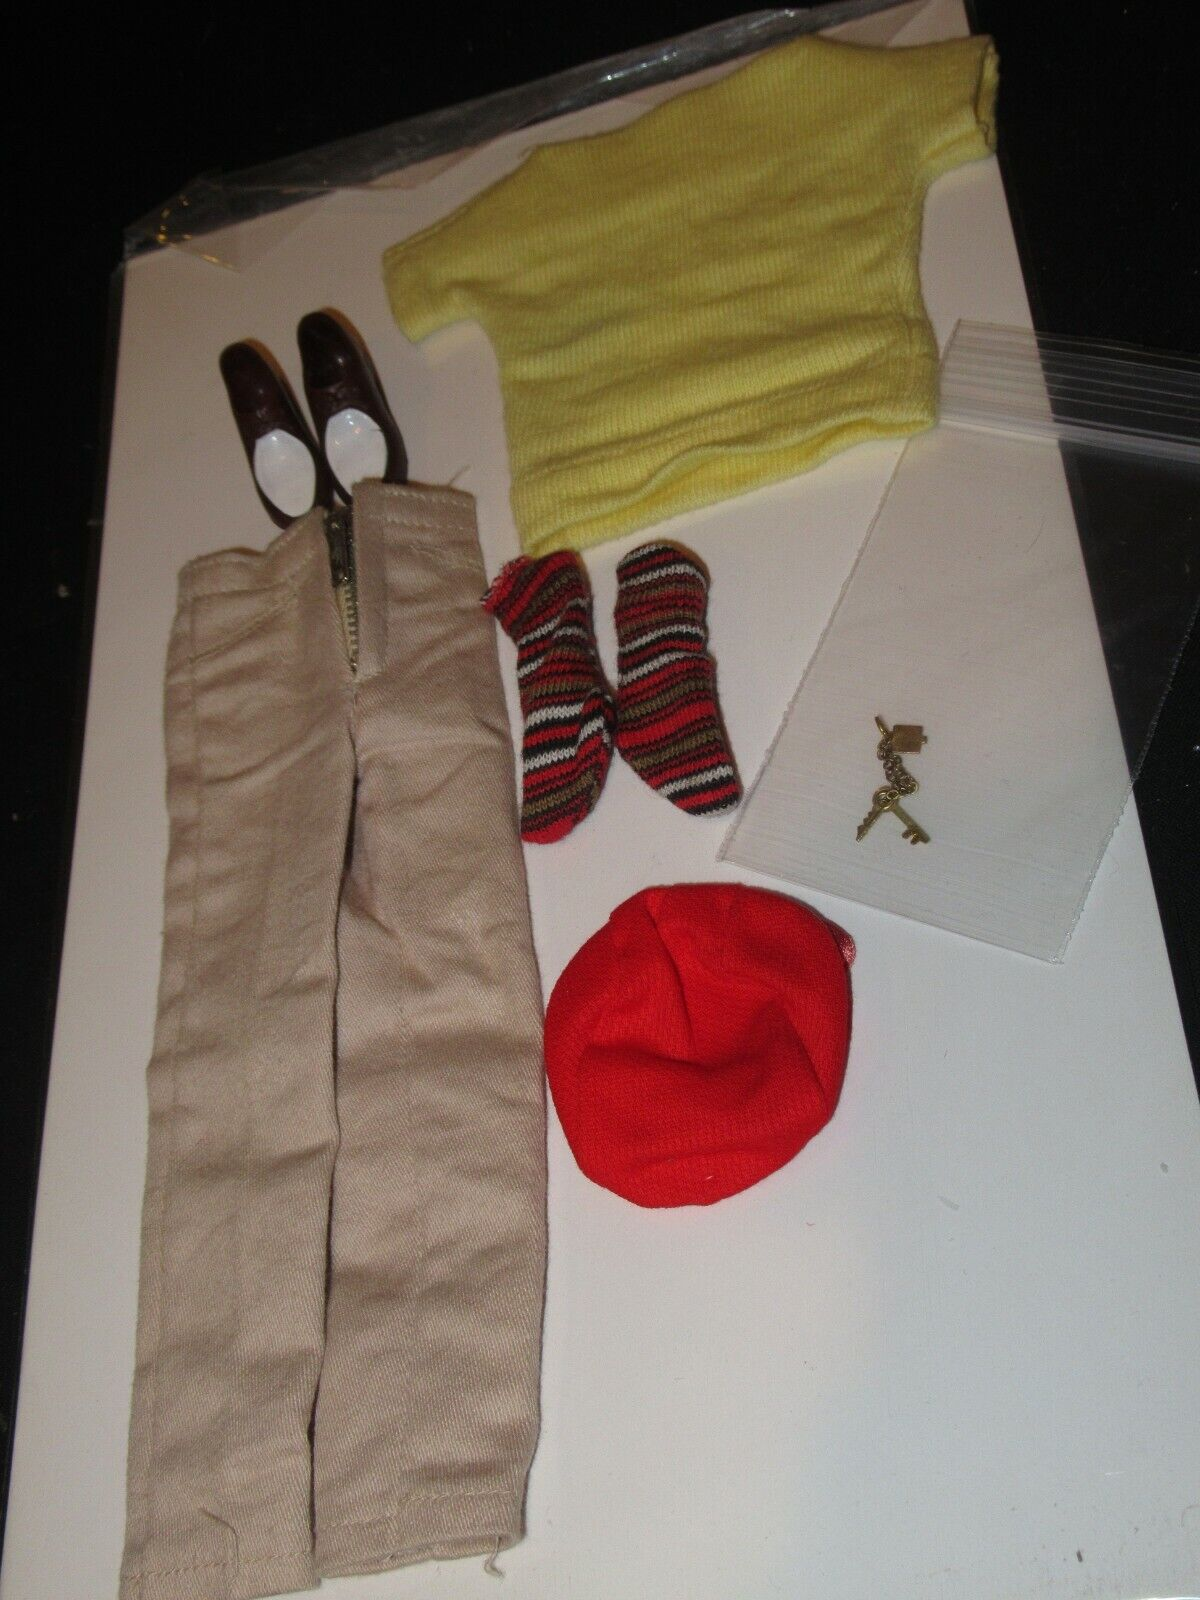 Vintage Barbie Ken Fashion Casual 782 Outfit With KEYS Complete MINTY mb12 - $74.99